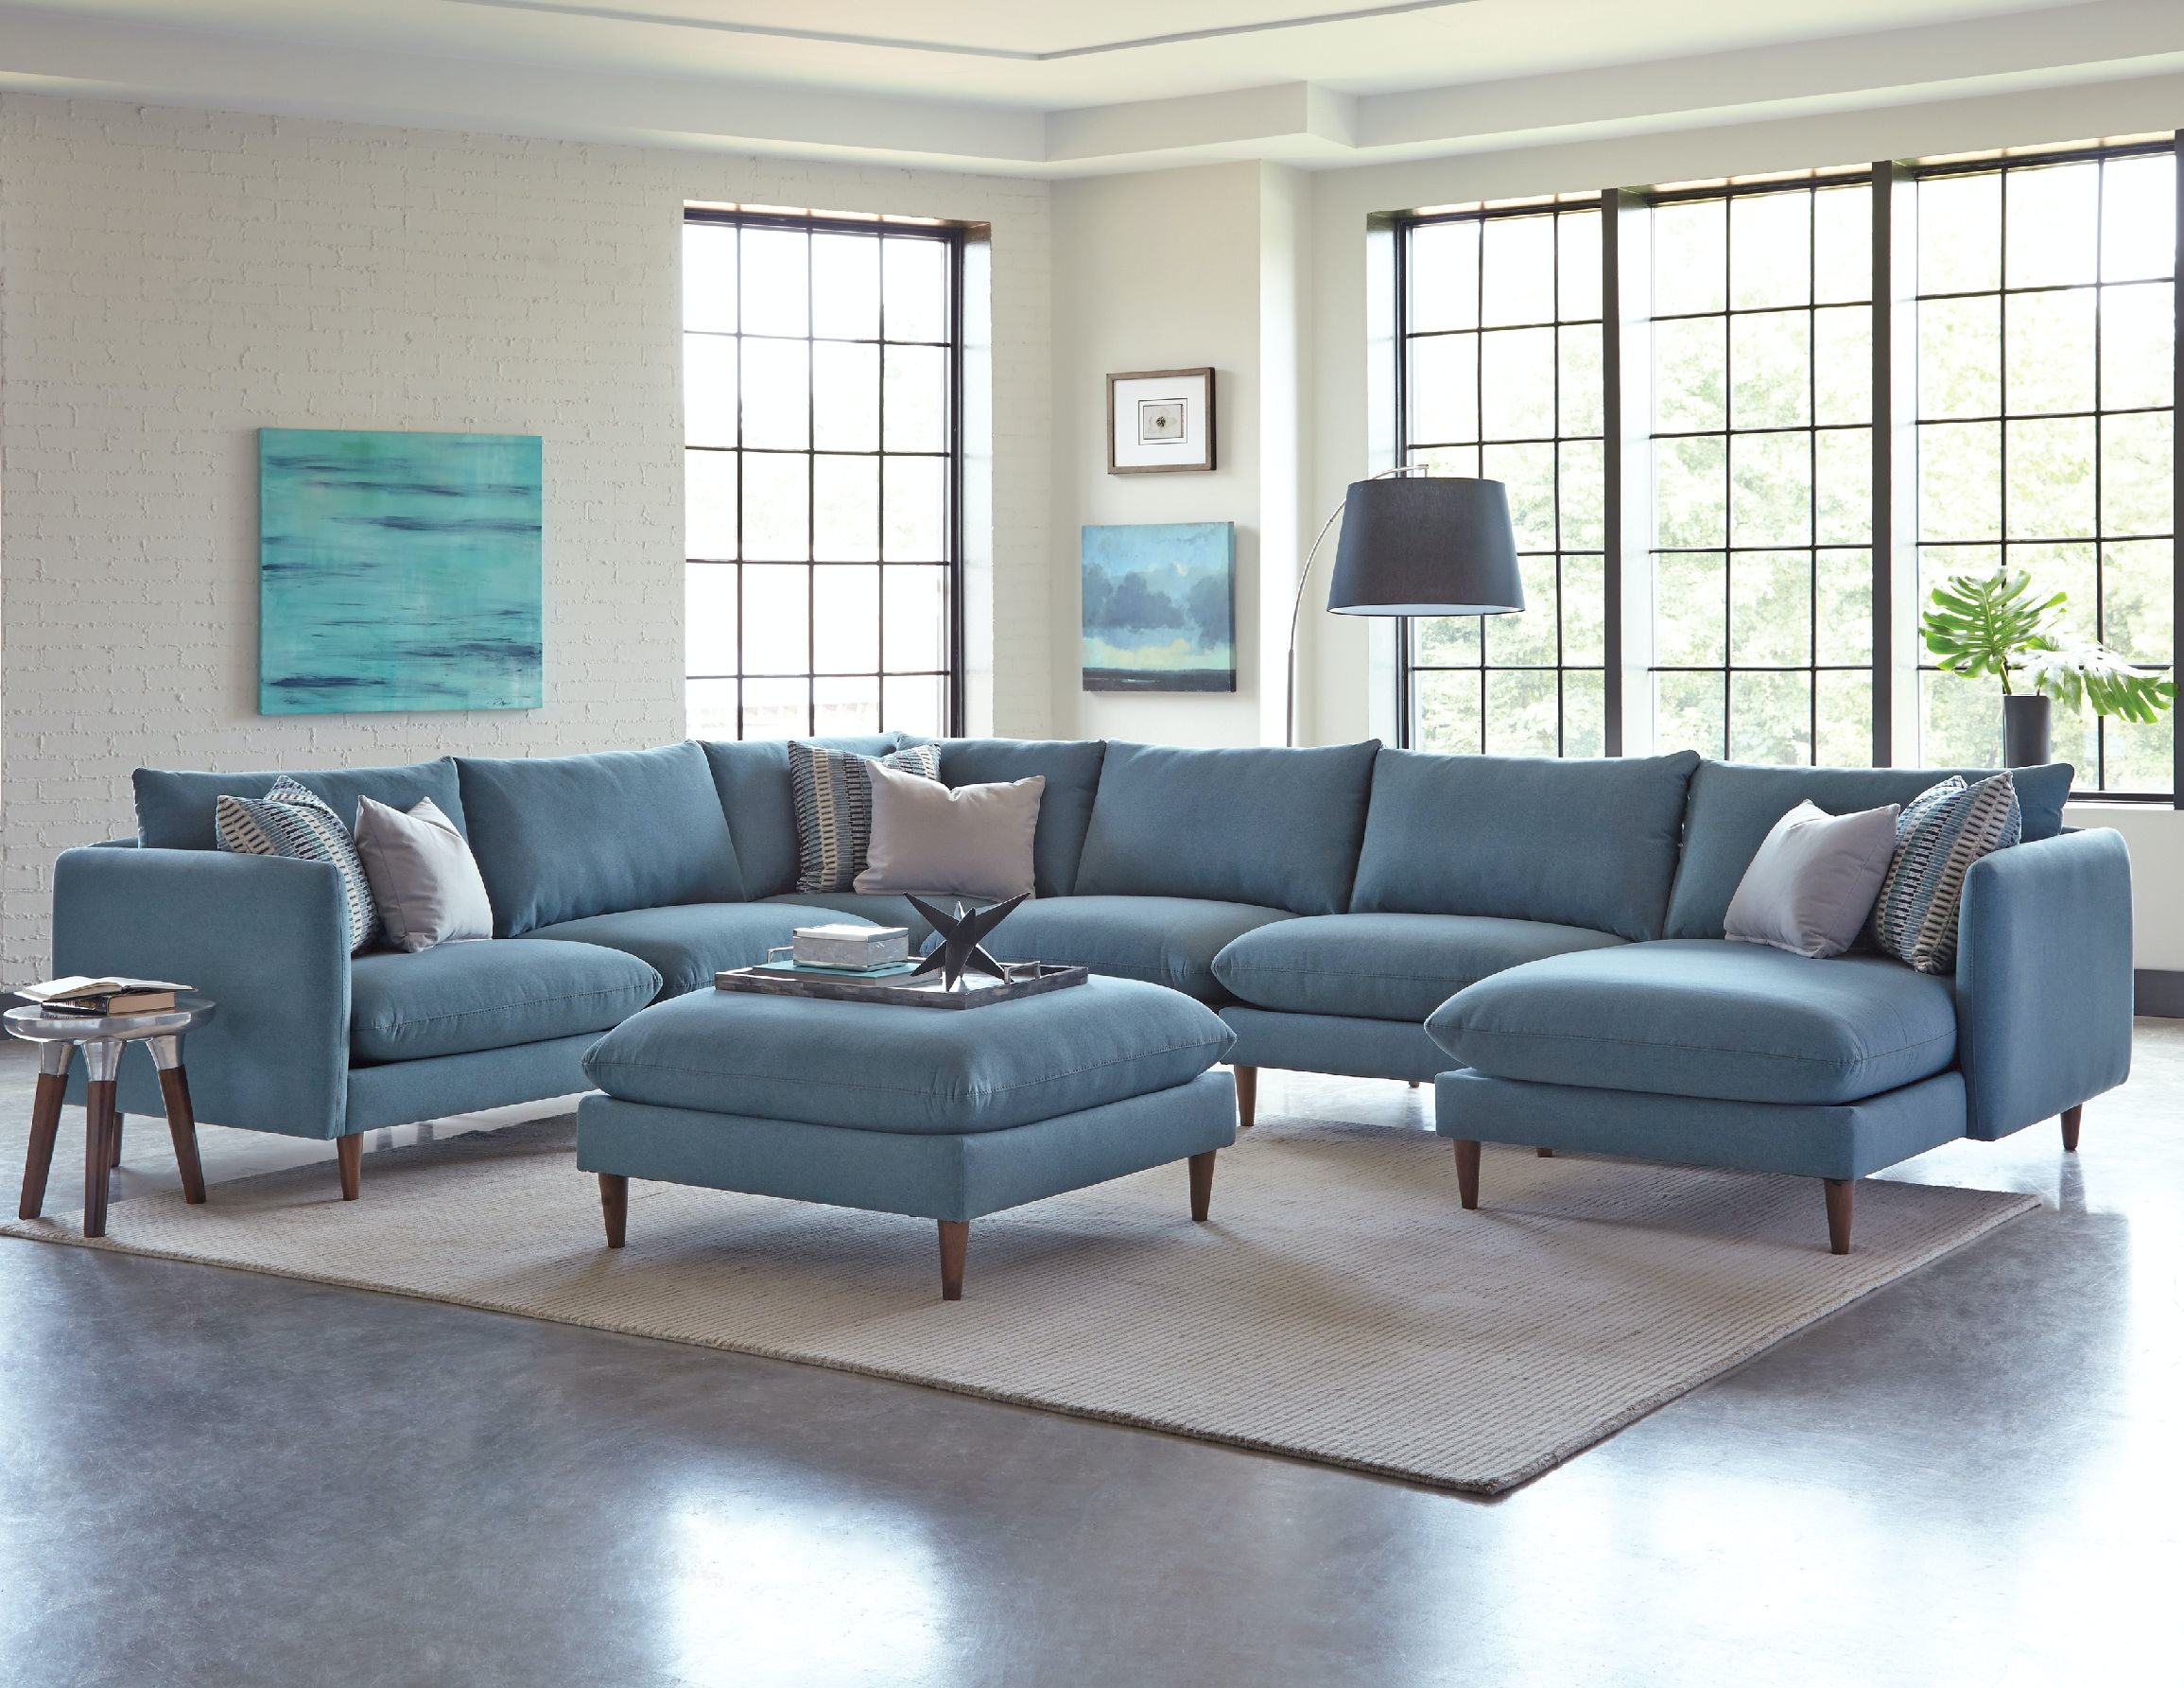 Jonathan Louis International Living Room Melbourne Sectional 304 Sectional